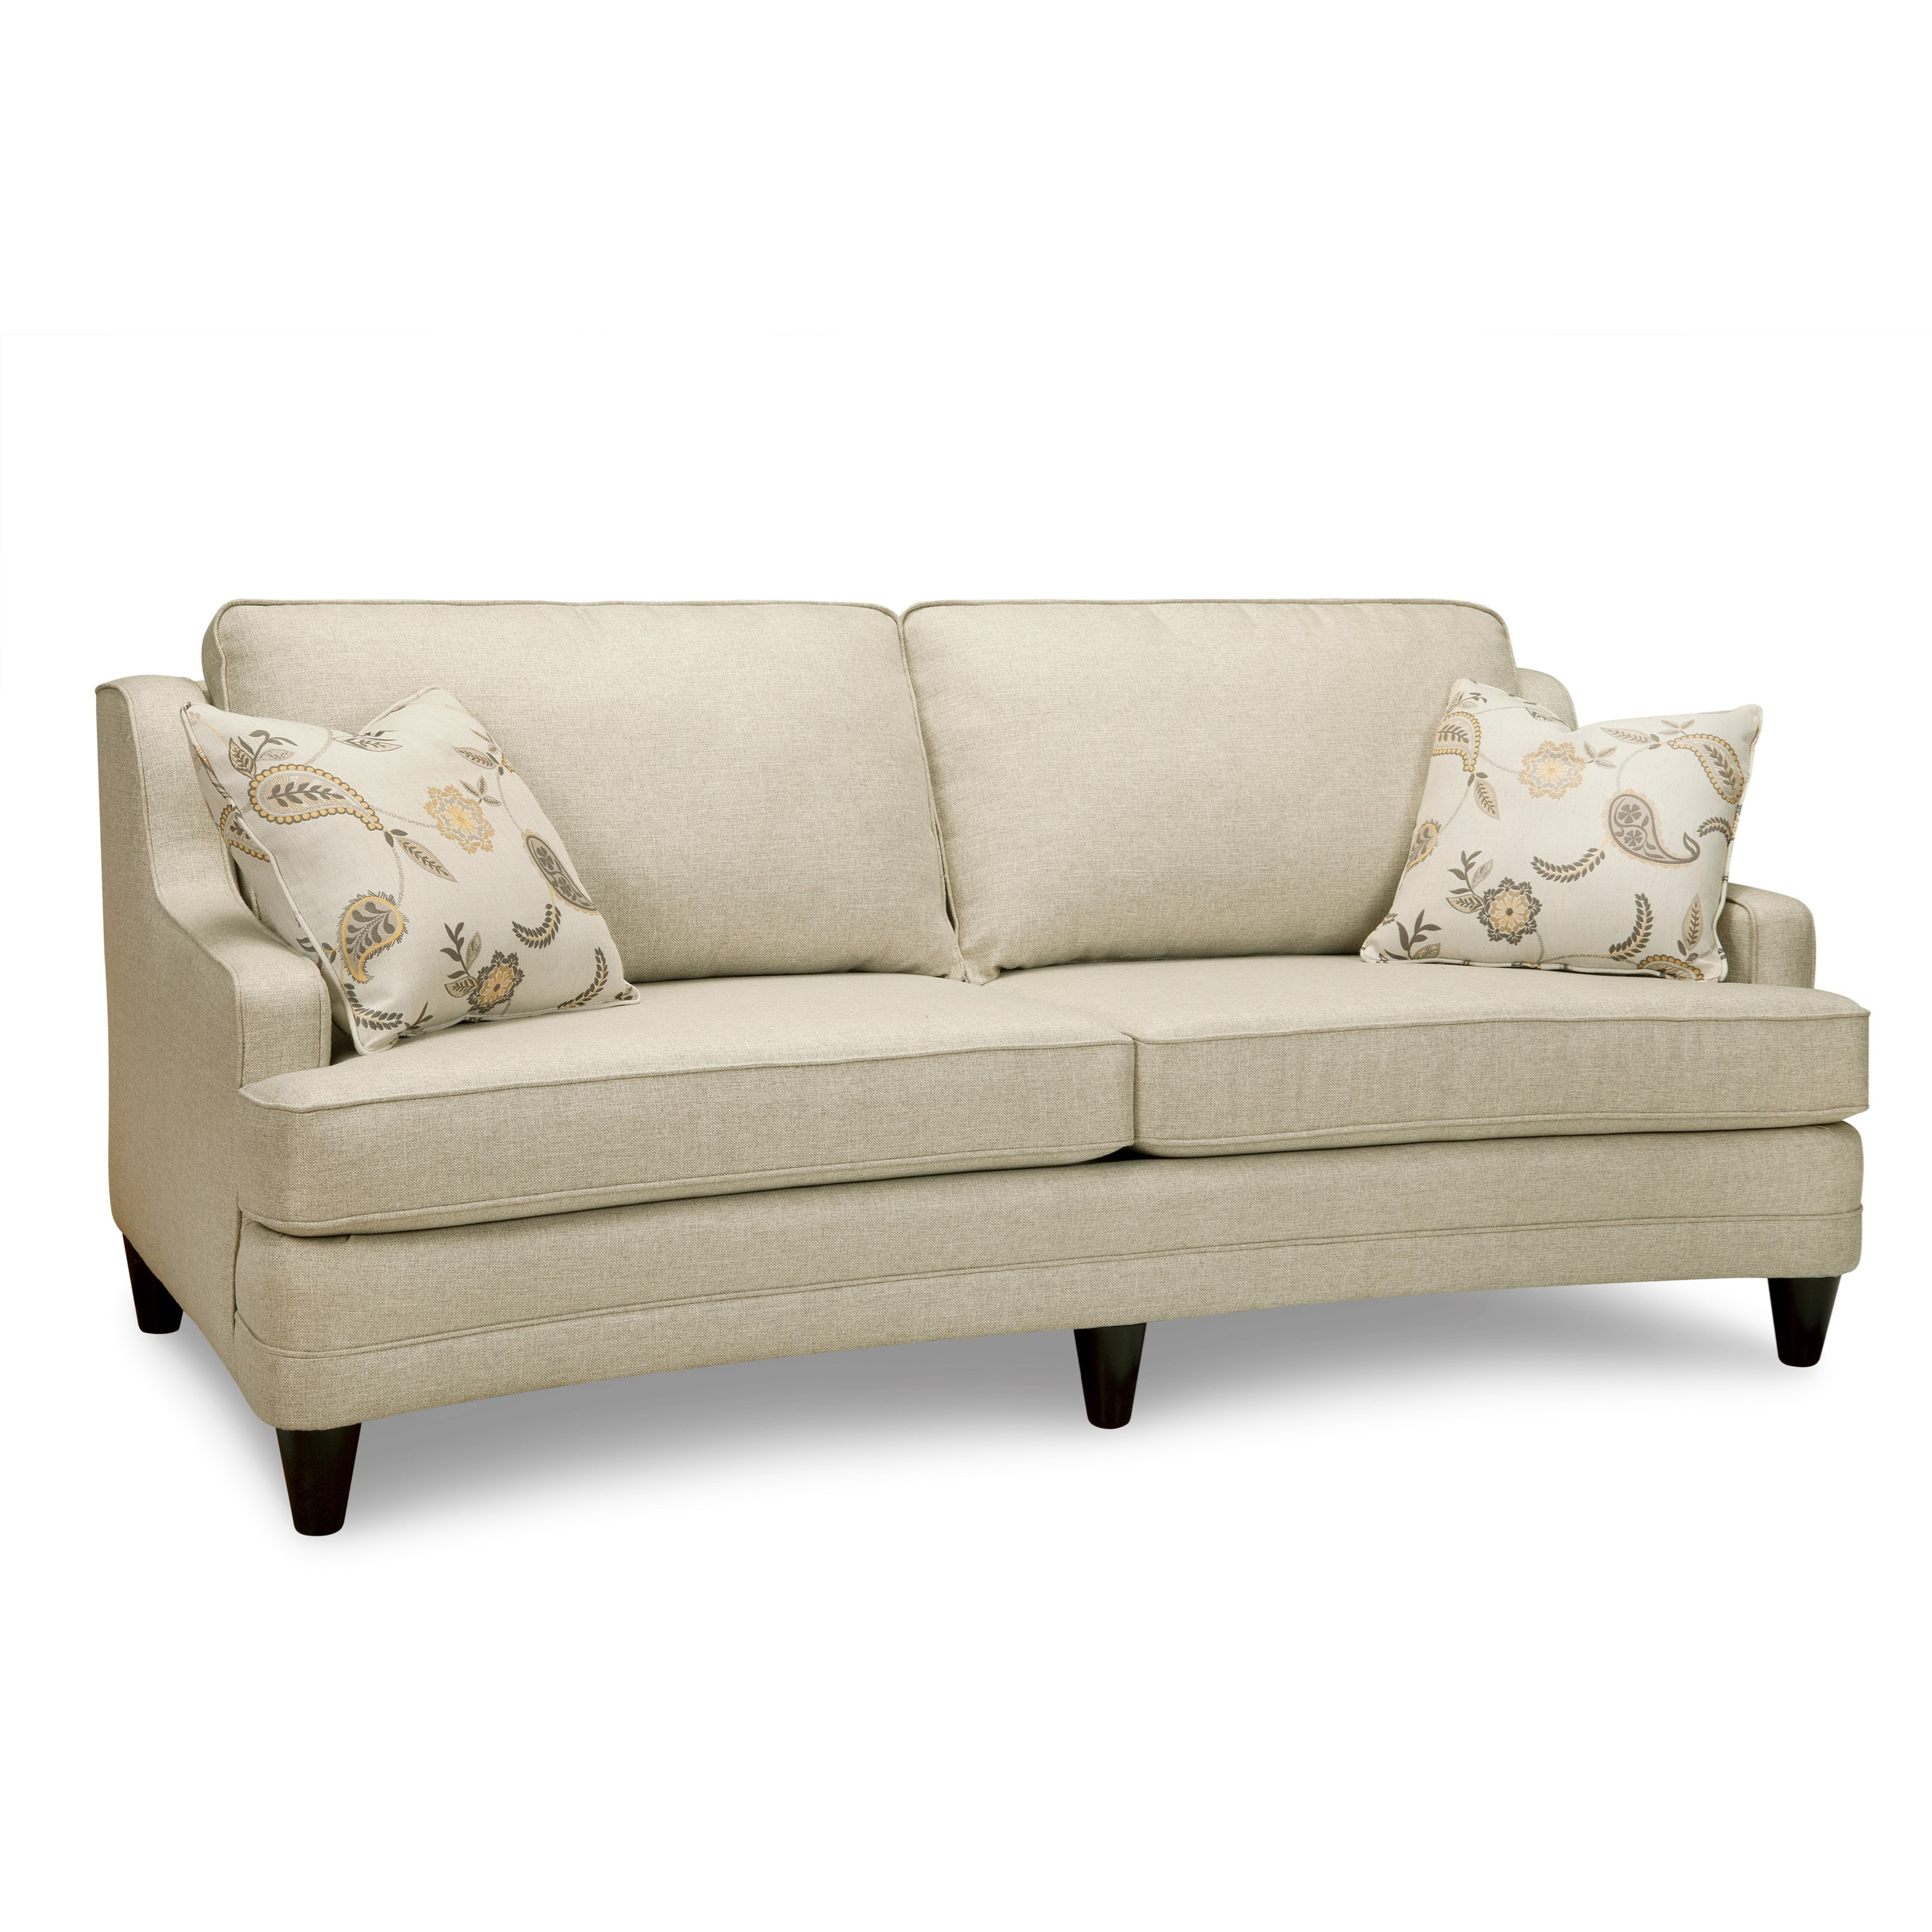 Superstyle 9691 Curved Sofa Item Number Liza Linen